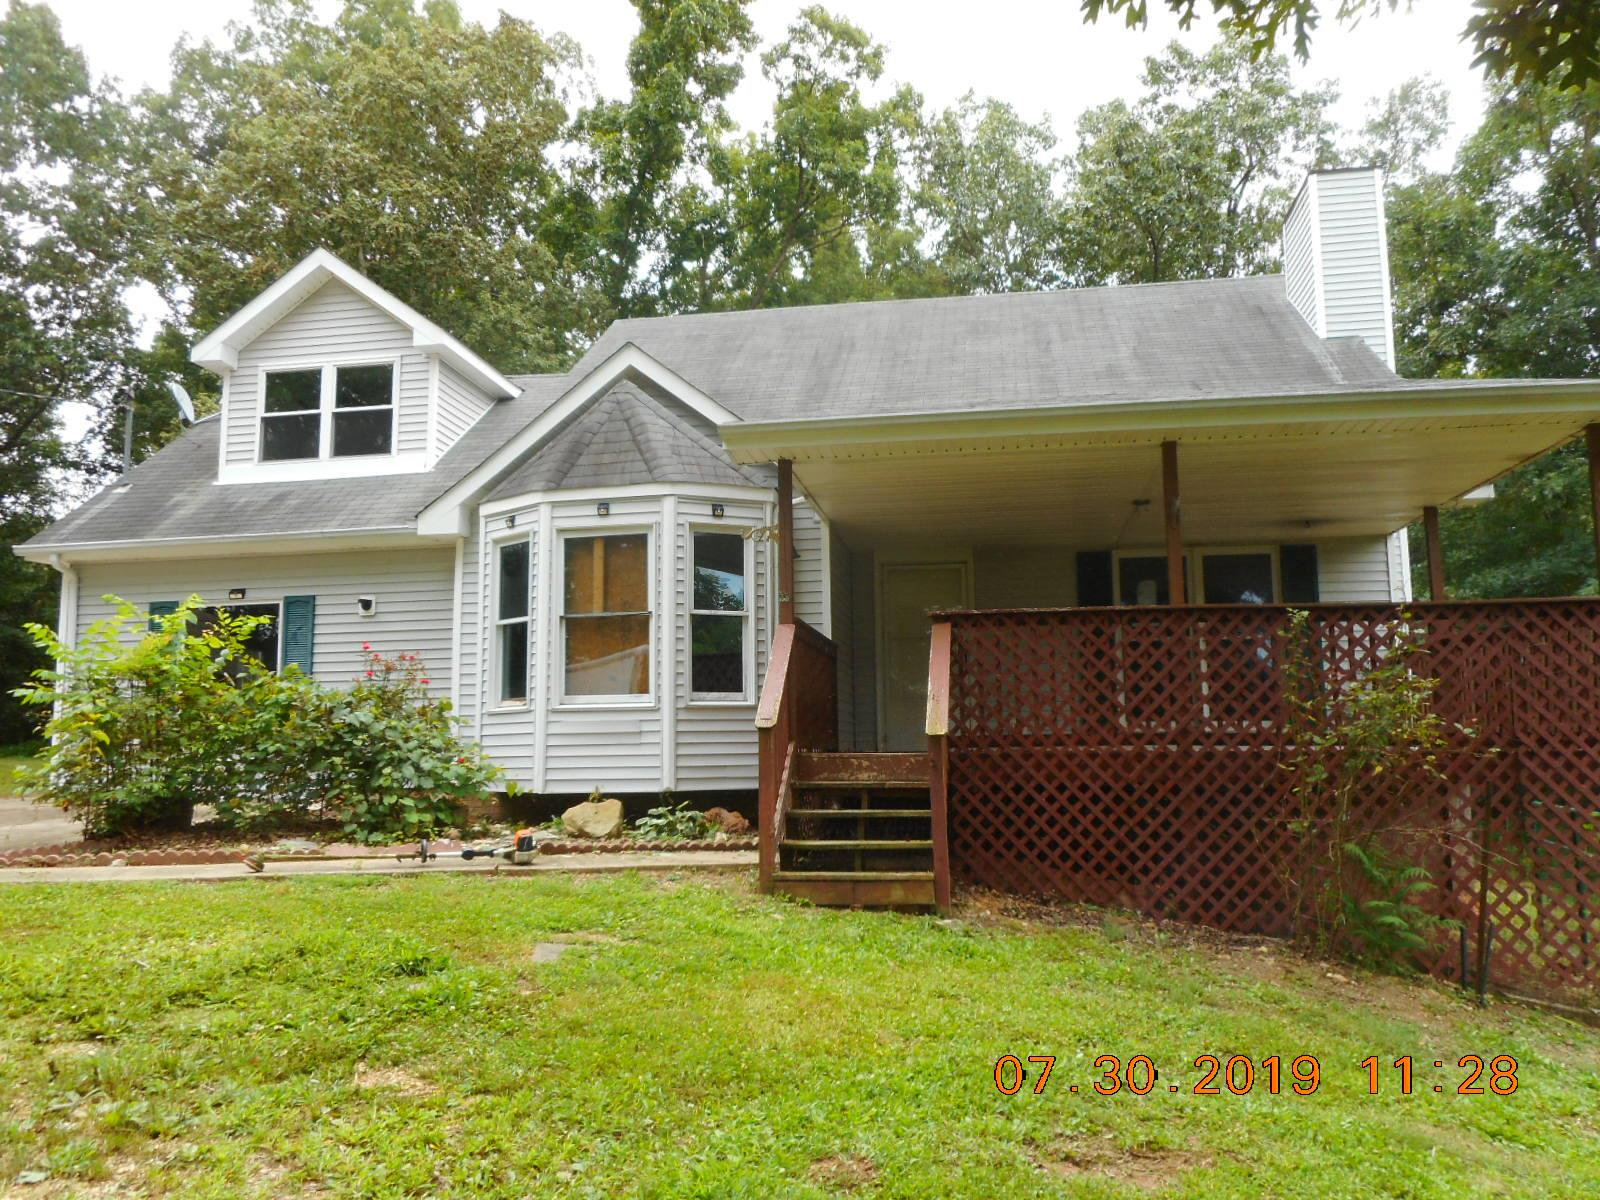 2164 DUNBAR RD, Woodlawn, TN 37191 - Woodlawn, TN real estate listing